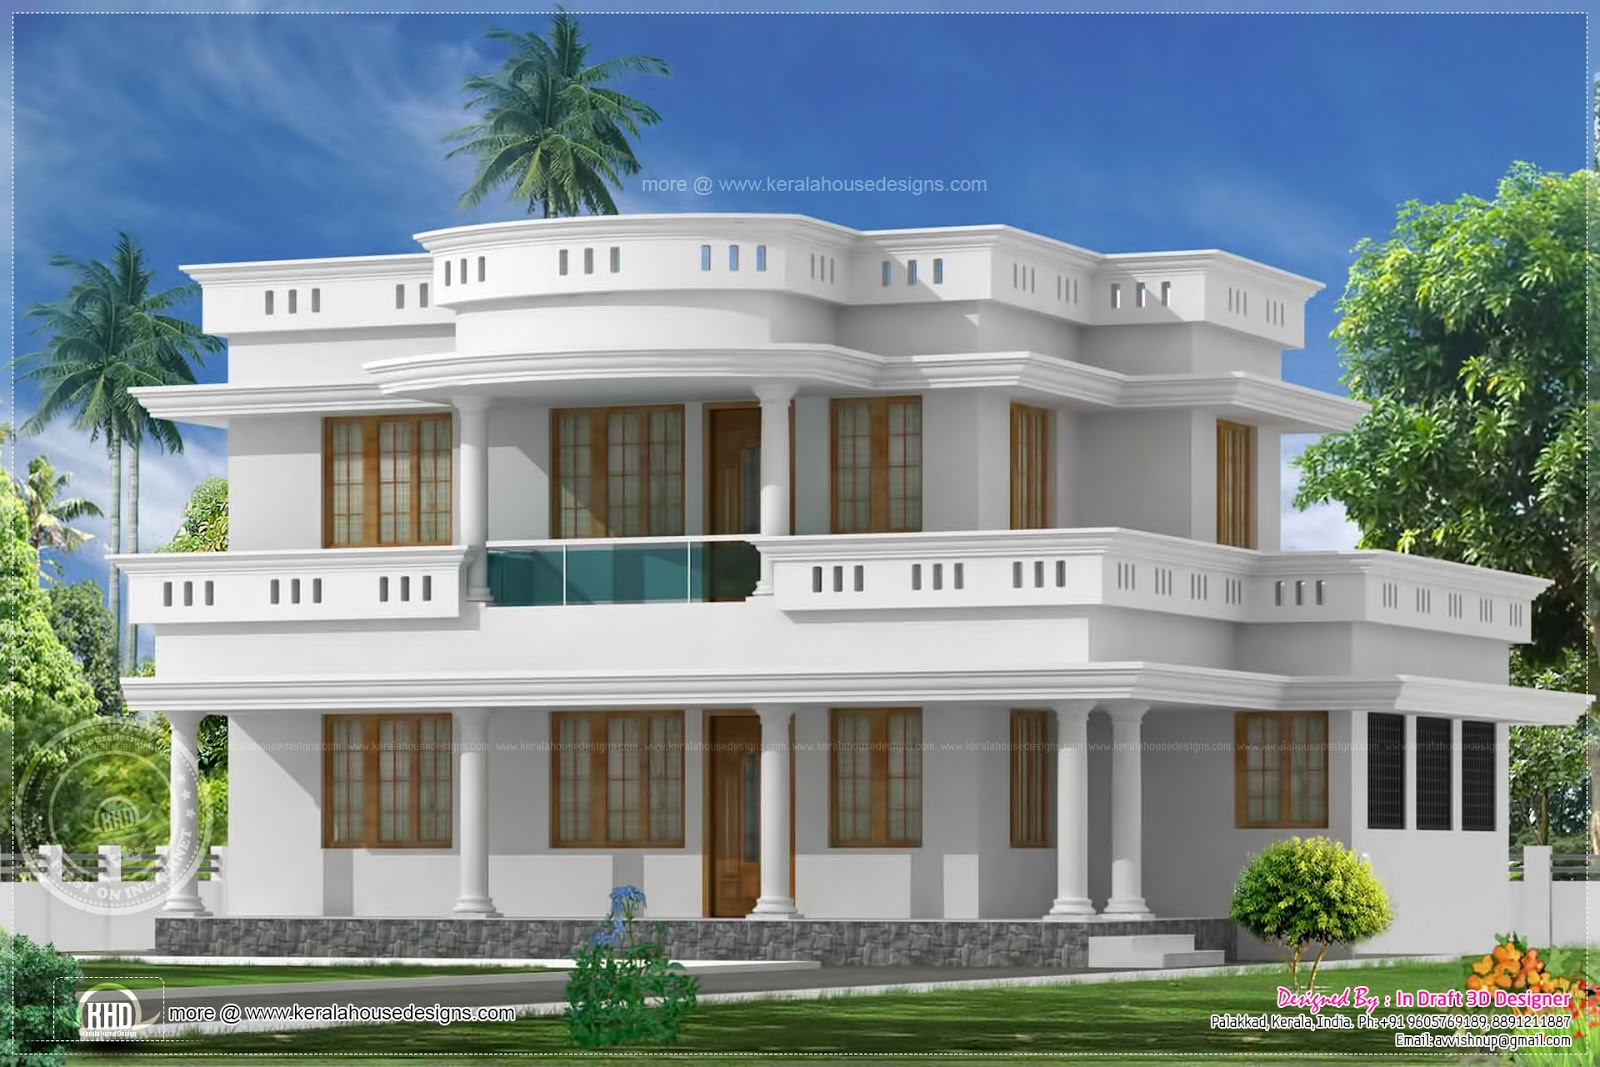 2192 Square Feet Villa Exterior Design Home Kerala Plans